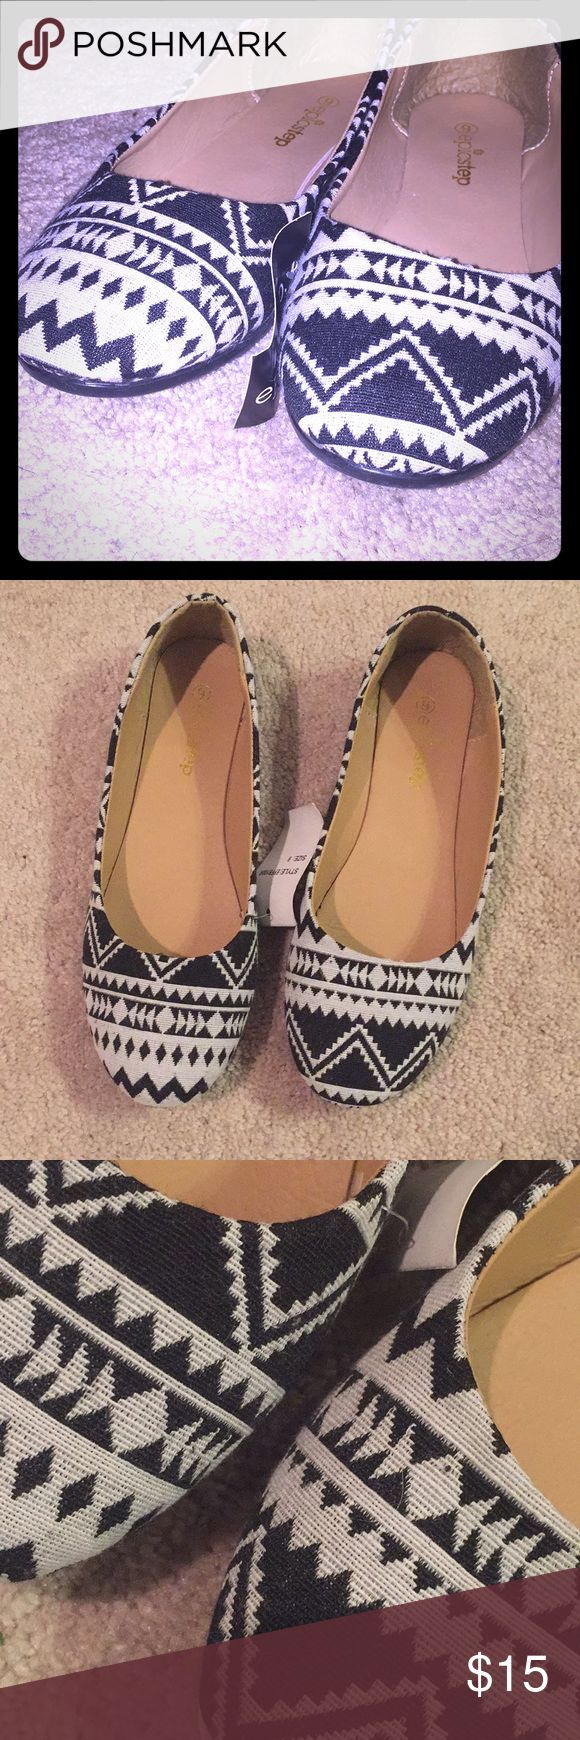 NWT Black and white Aztec flats NWT Never worn adorable Black and white knit like outside Aztec patterned flats! I ordered these online and they are too small for me. I usually wear a 9-9.5 and these were tight. I would say these would fit an 8.5 best. Shoes Flats & Loafers